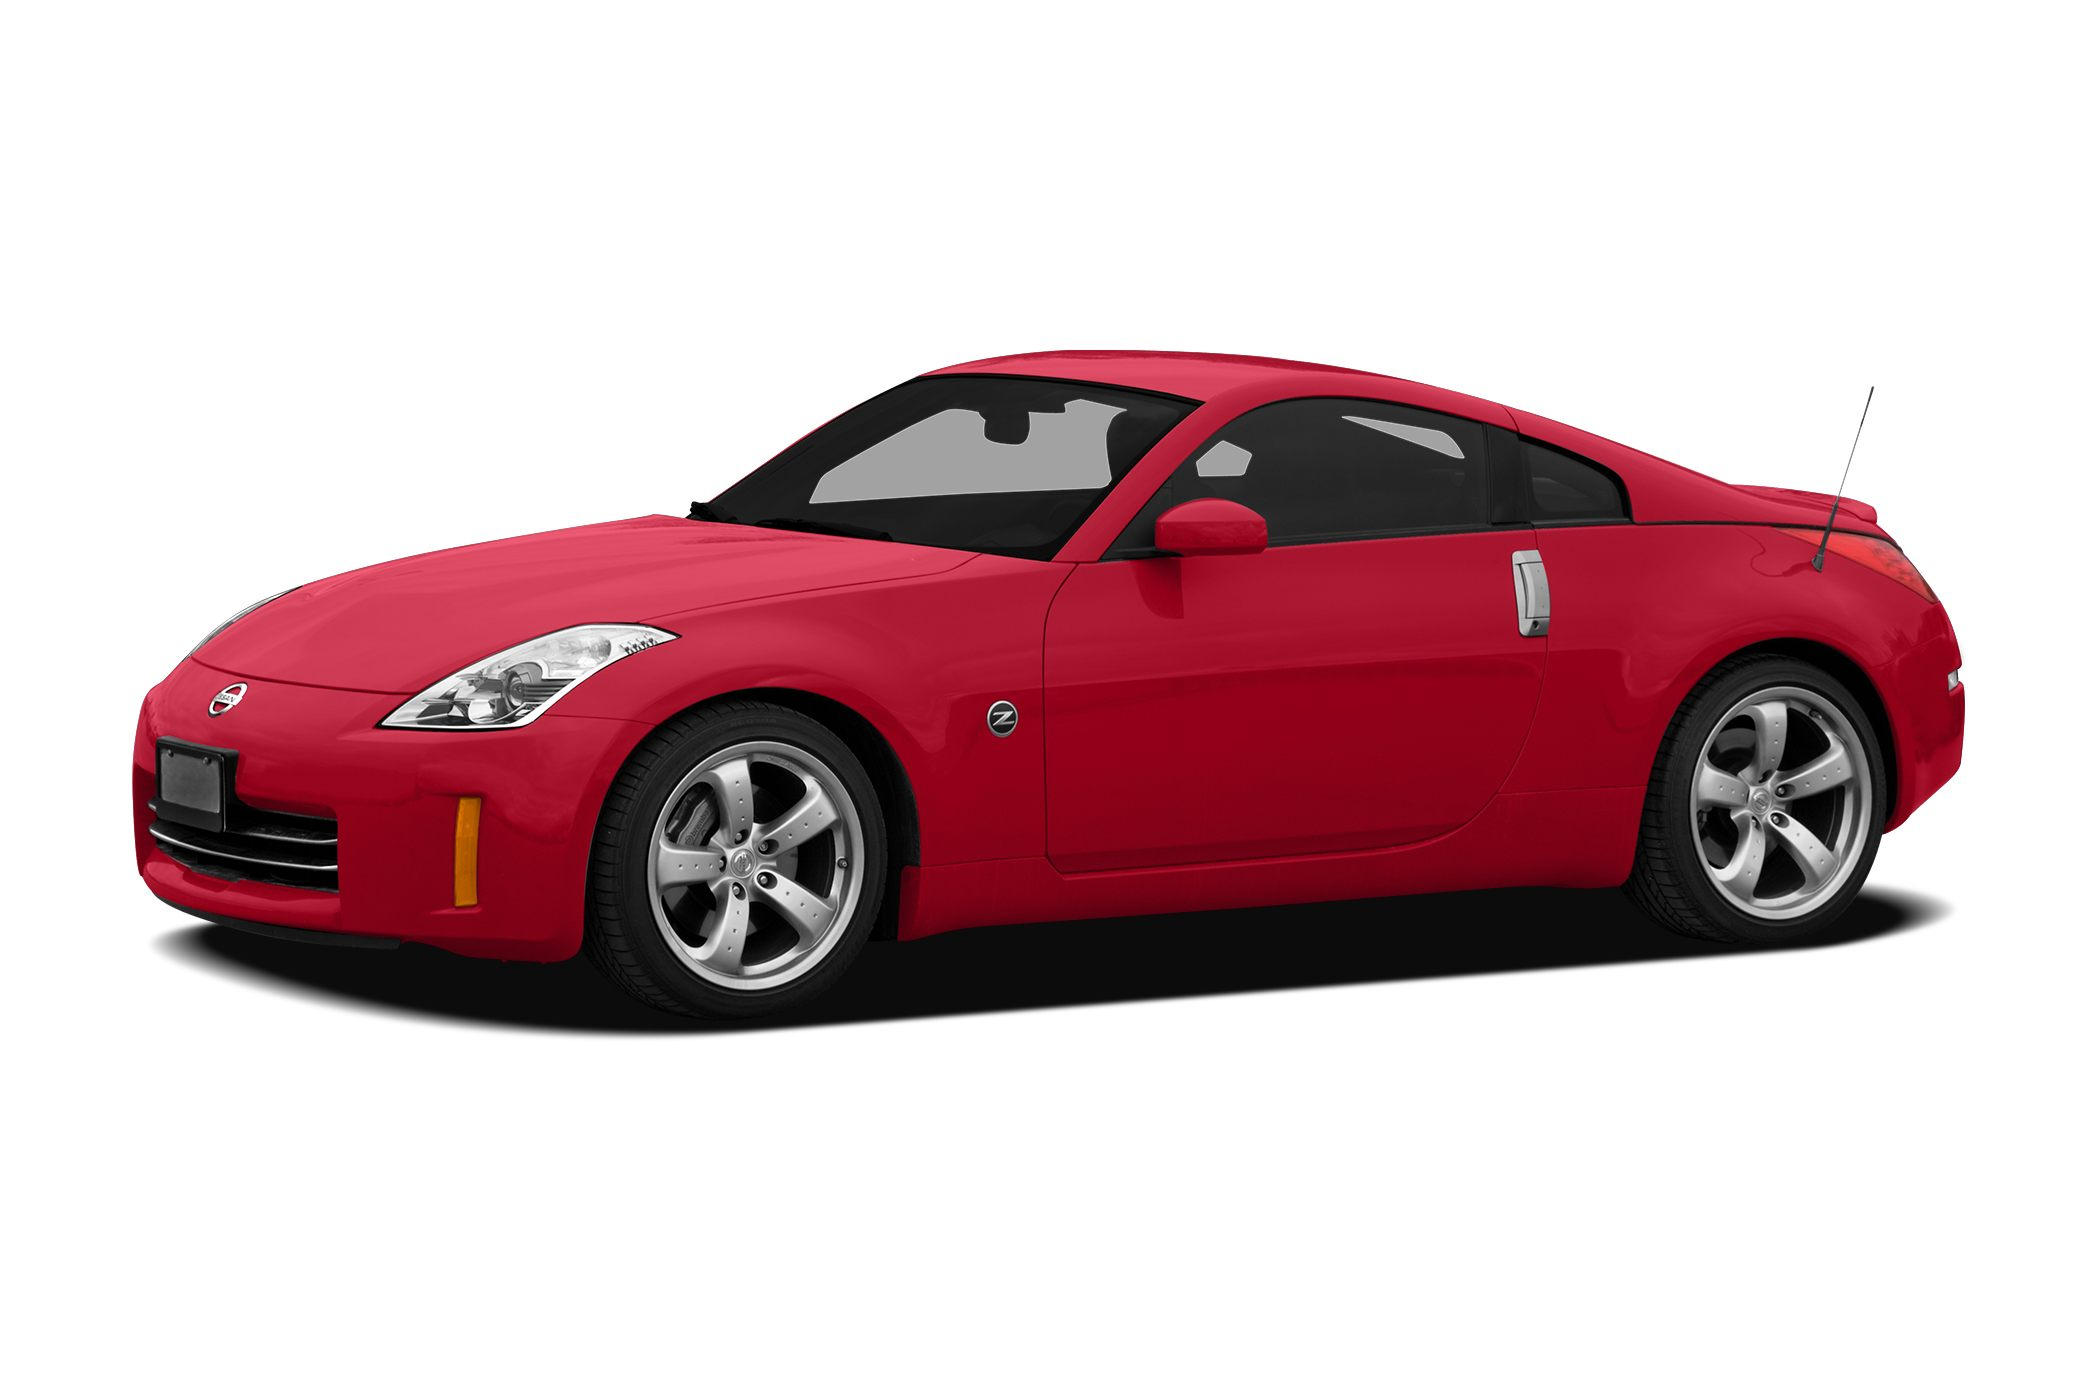 2008 Nissan 350Z Touring Convertible for sale in Timonium for $19,981 with 32,475 miles.